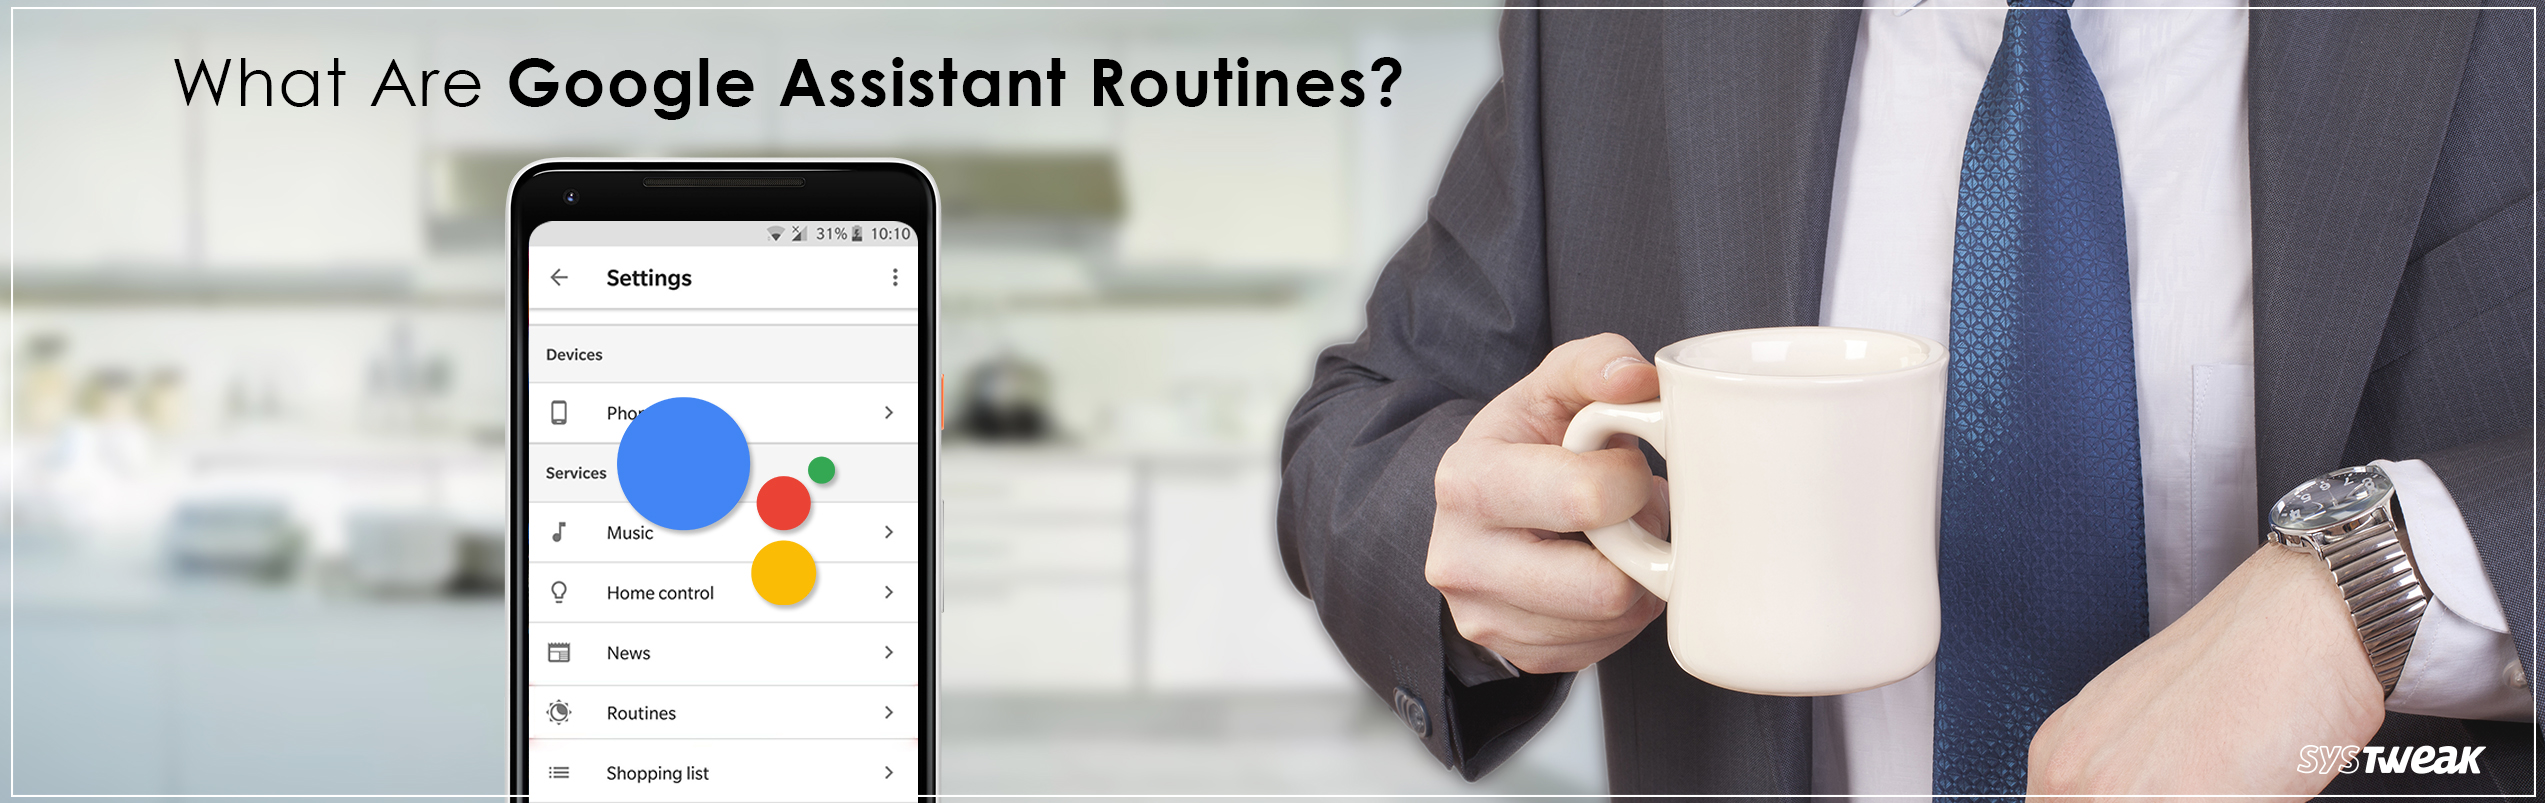 What Is Google Assistant Routines?